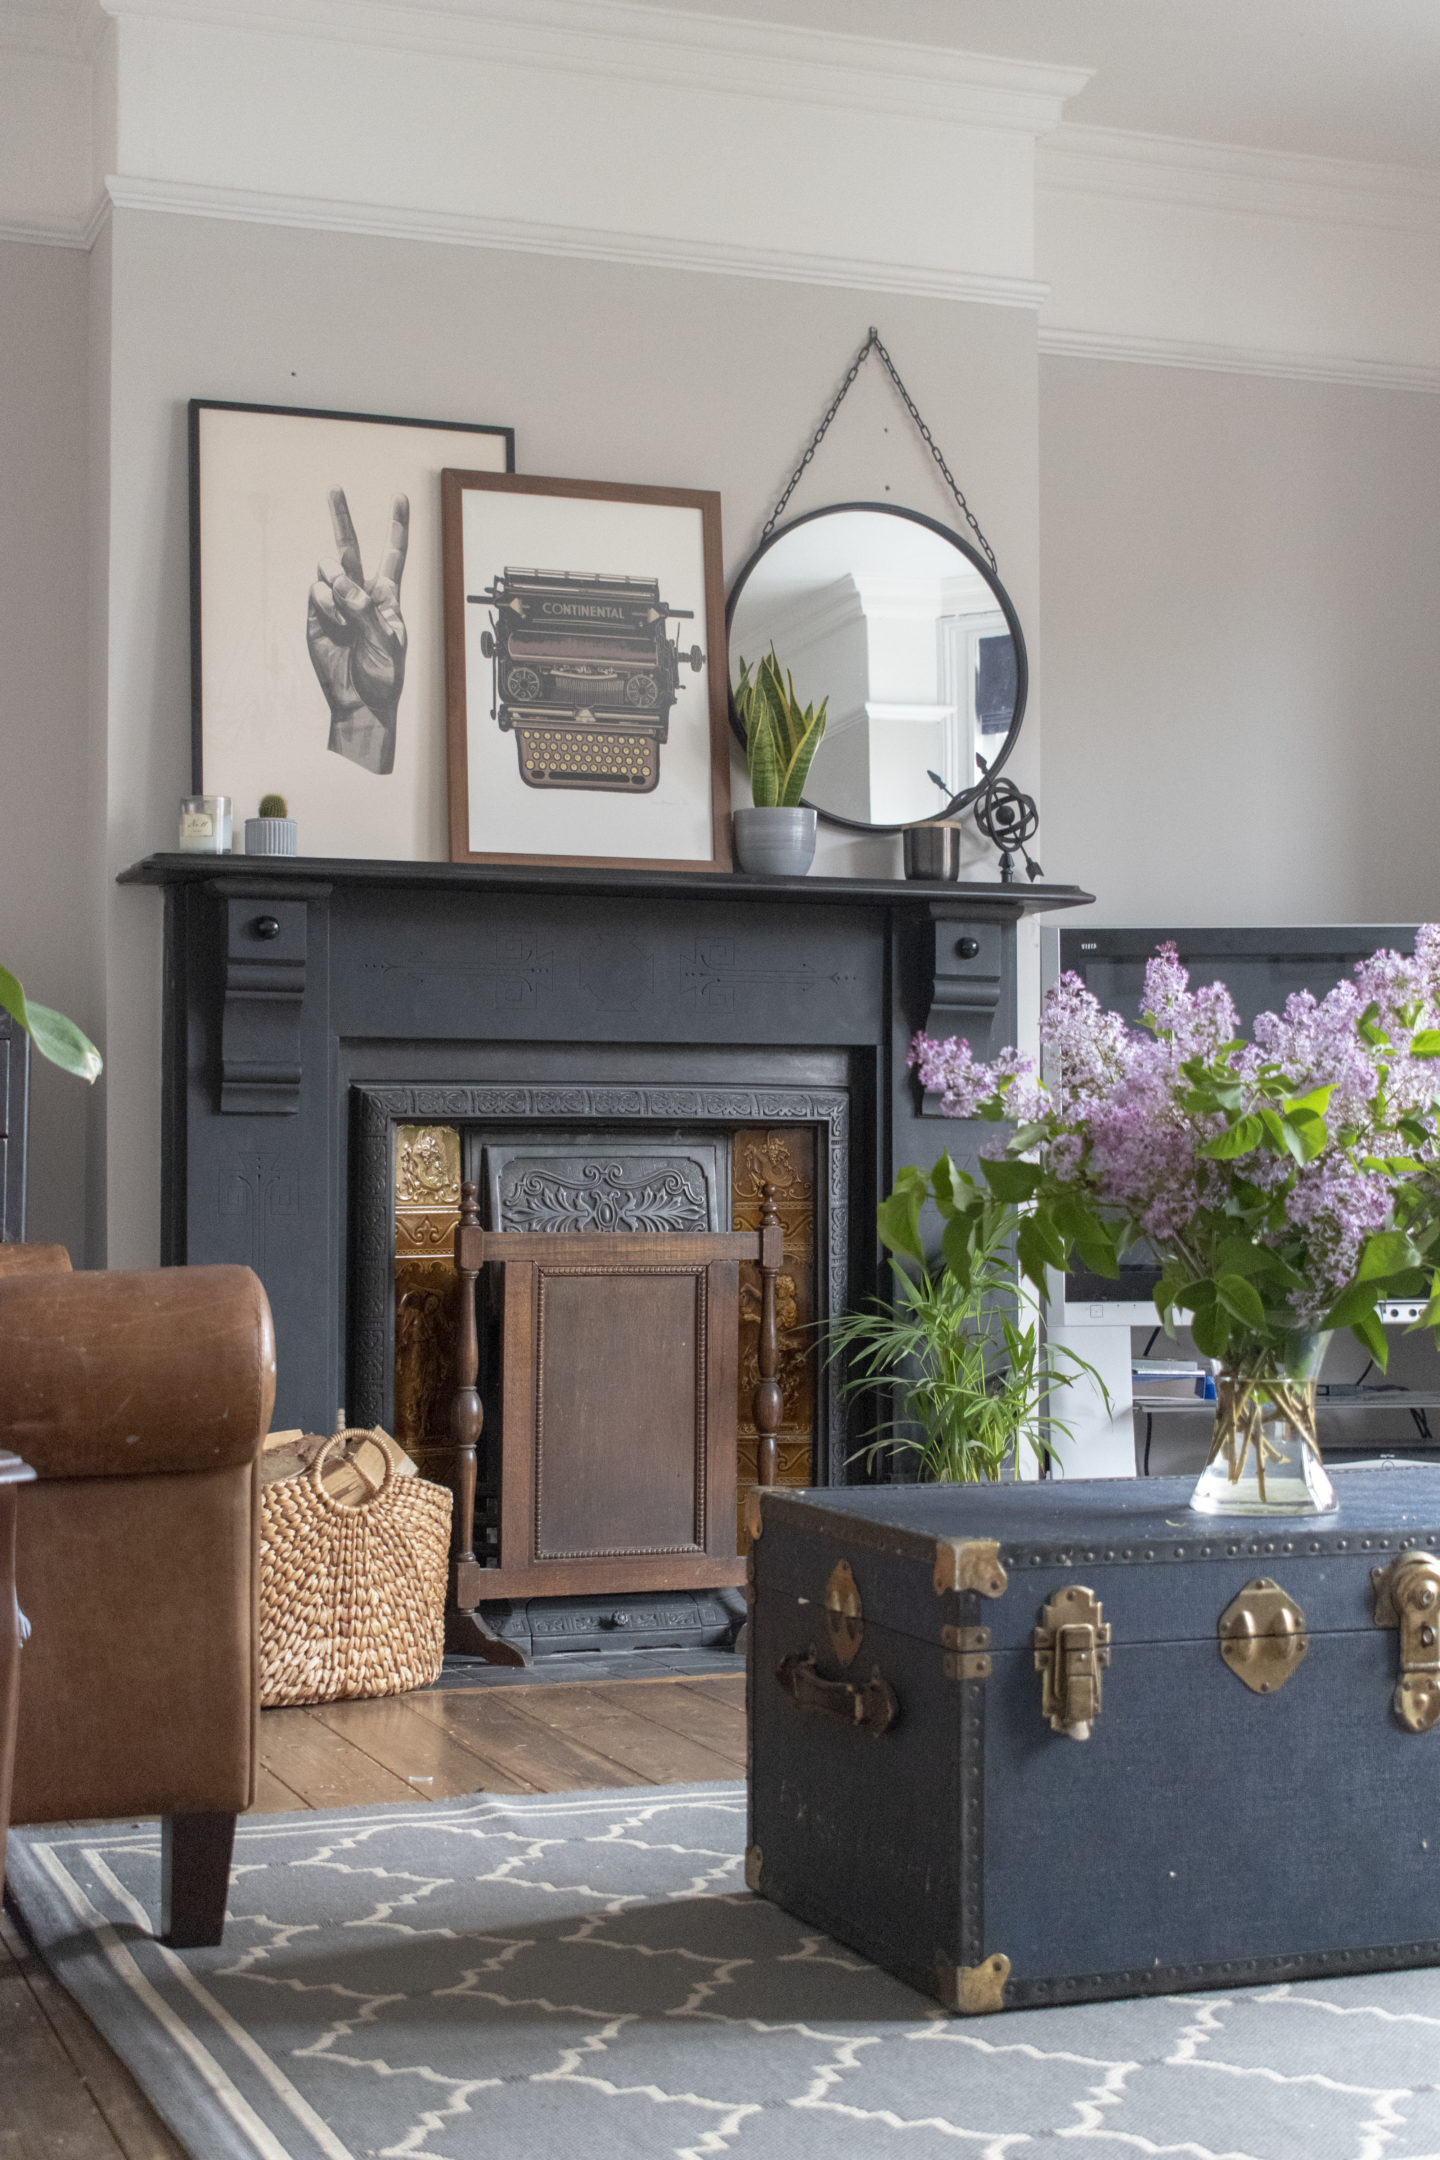 5 Reasons Why Vintage Furniture is Always a Good Idea